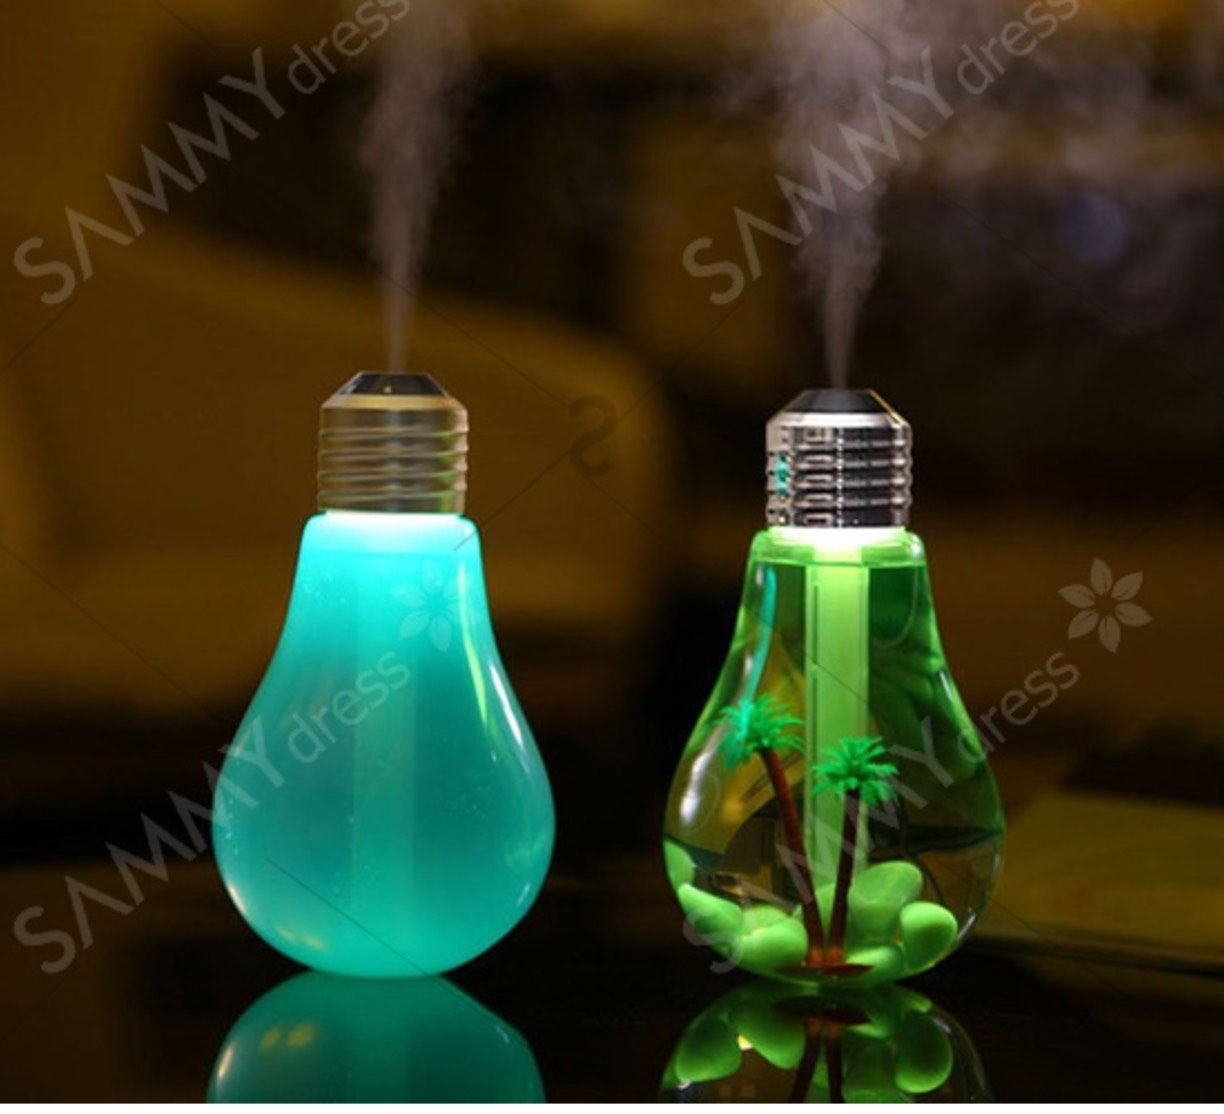 Portable 7 Color LED Night Light and Humidifier ONLY $6.00! #16B697